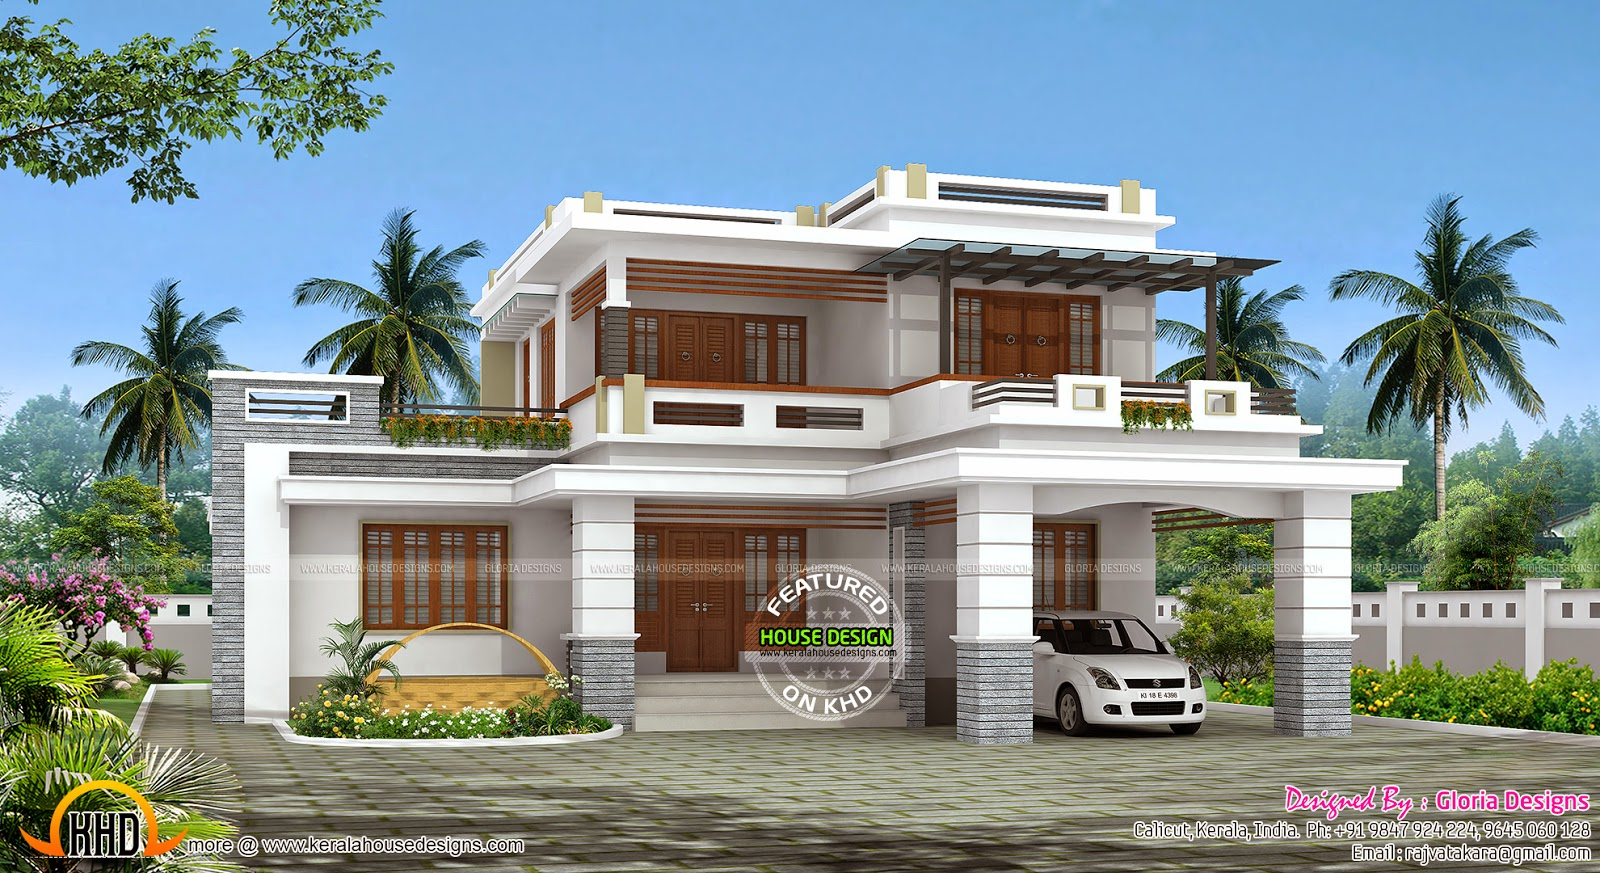 269 sq-m single storied house | keralahousedesigns